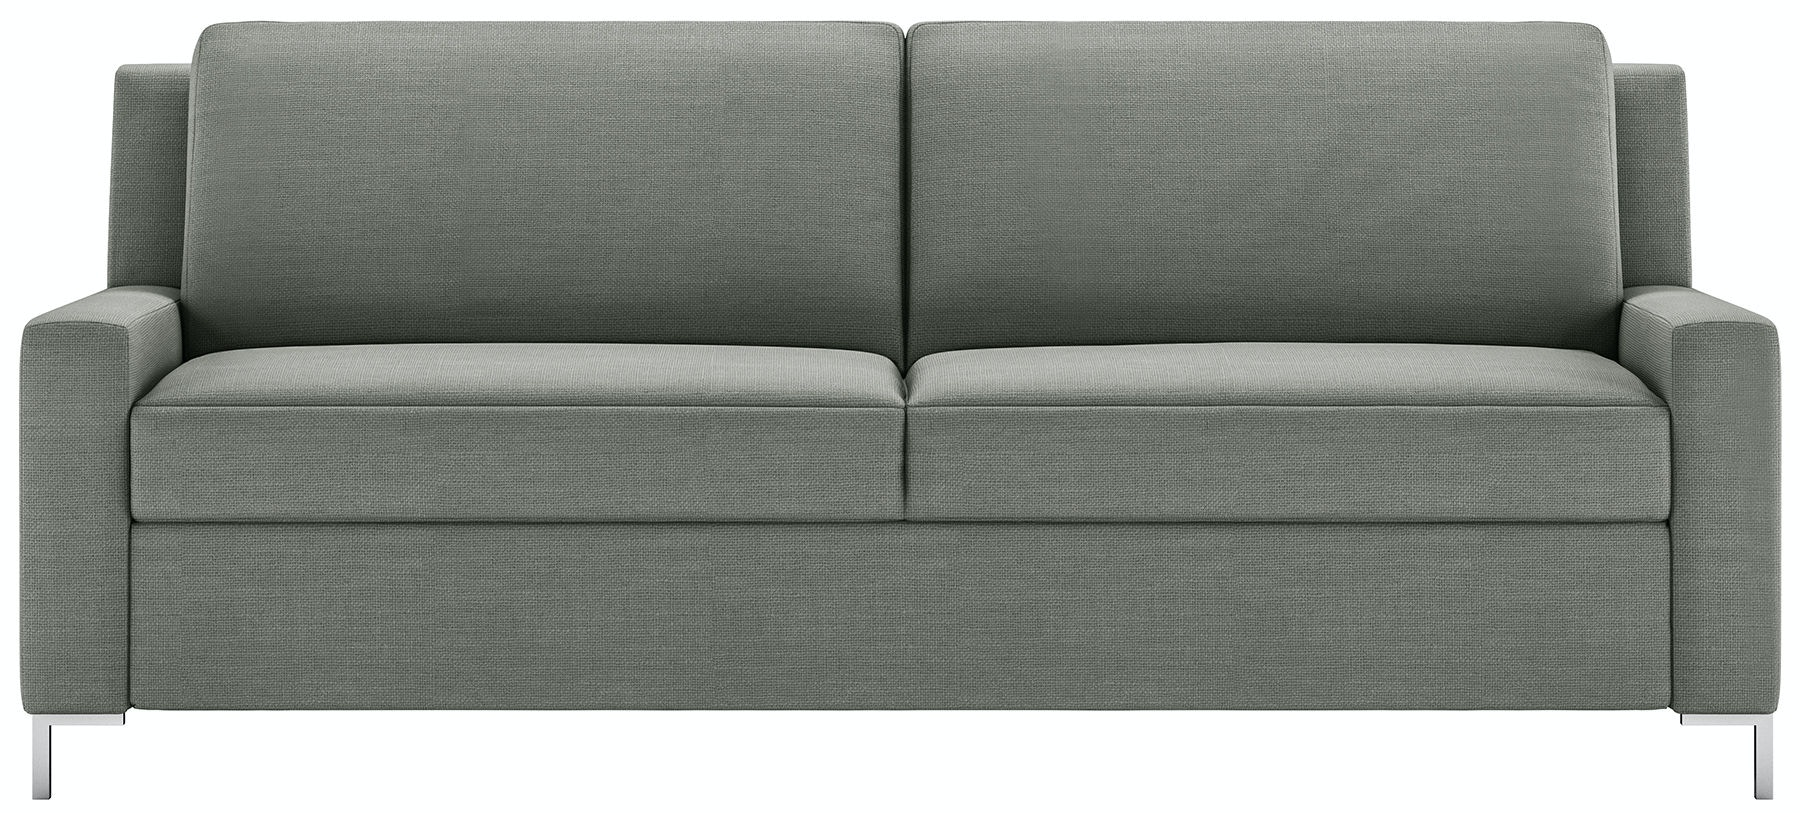 American Leather Living Room Sofa Sleeper Queen Size Brs So2 Qs